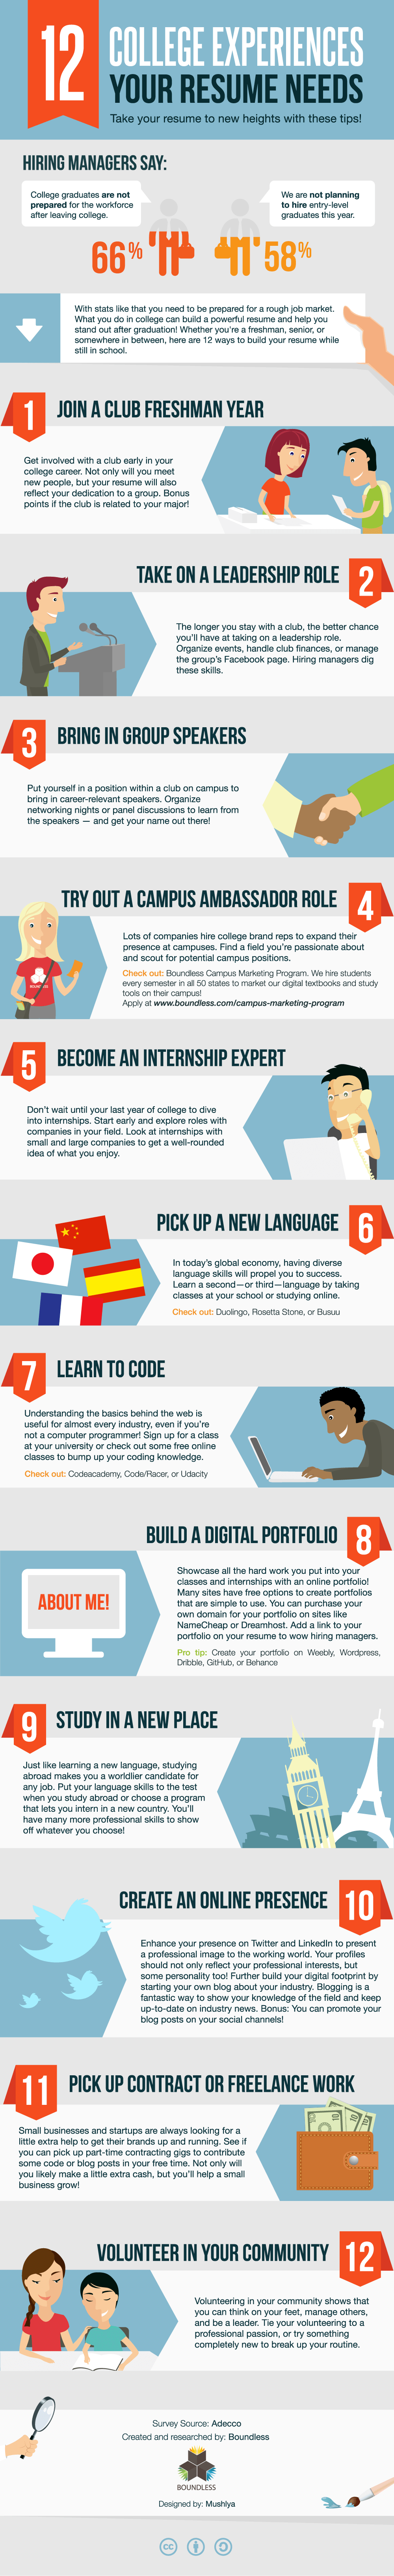 12 Ways to Build your Resume in College Infographic - e-Learning ...